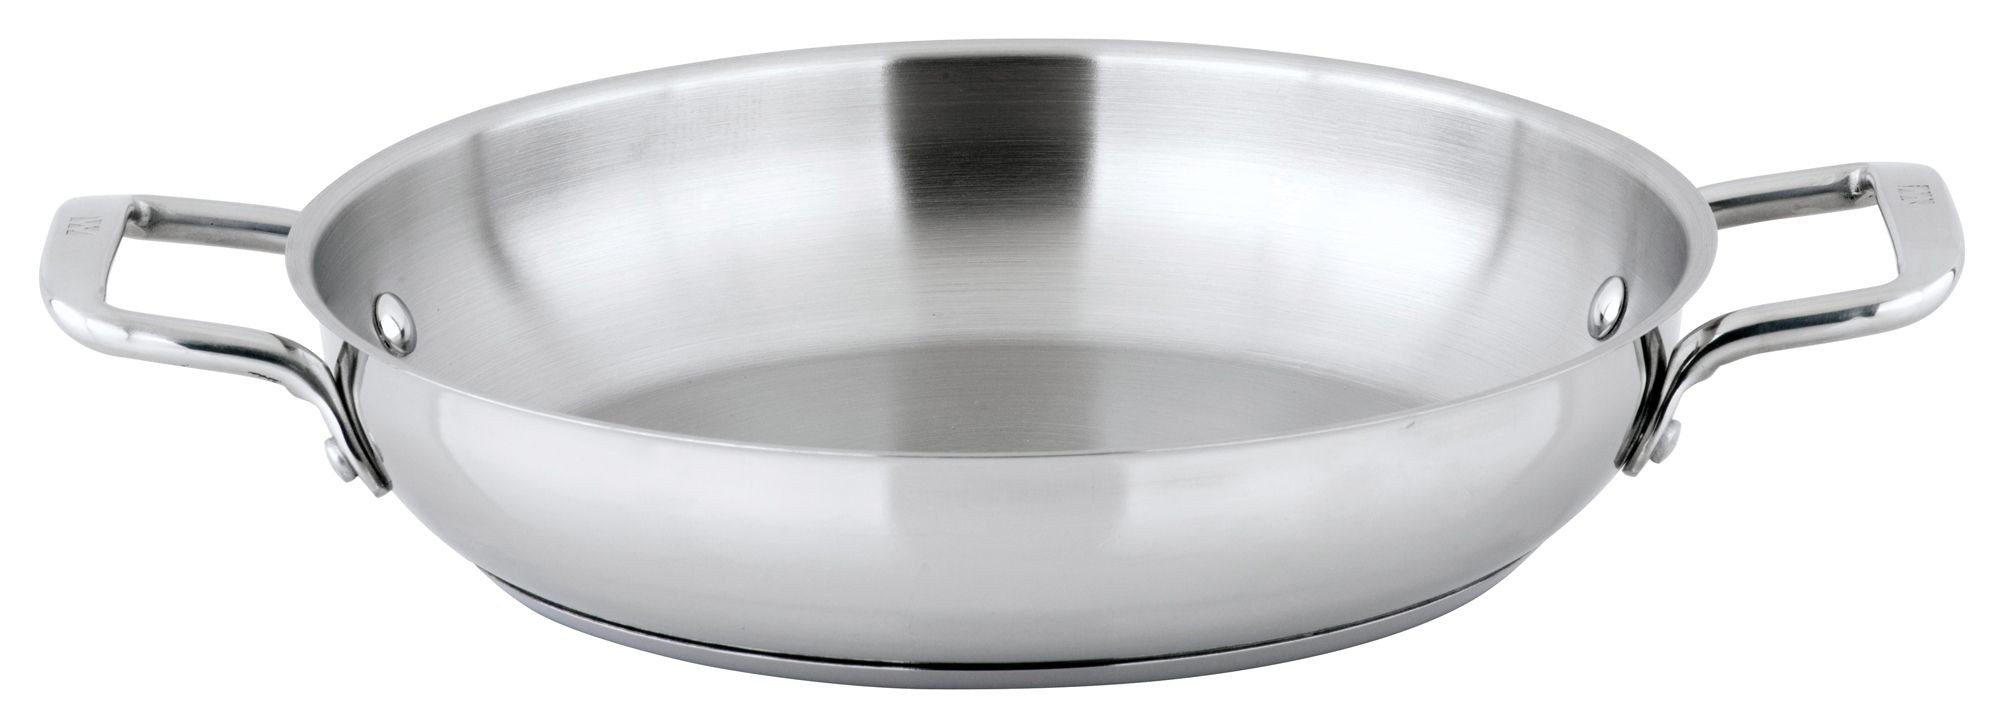 "Winco SSOP-11 Stainless Steel 11"" Omelet Pan"